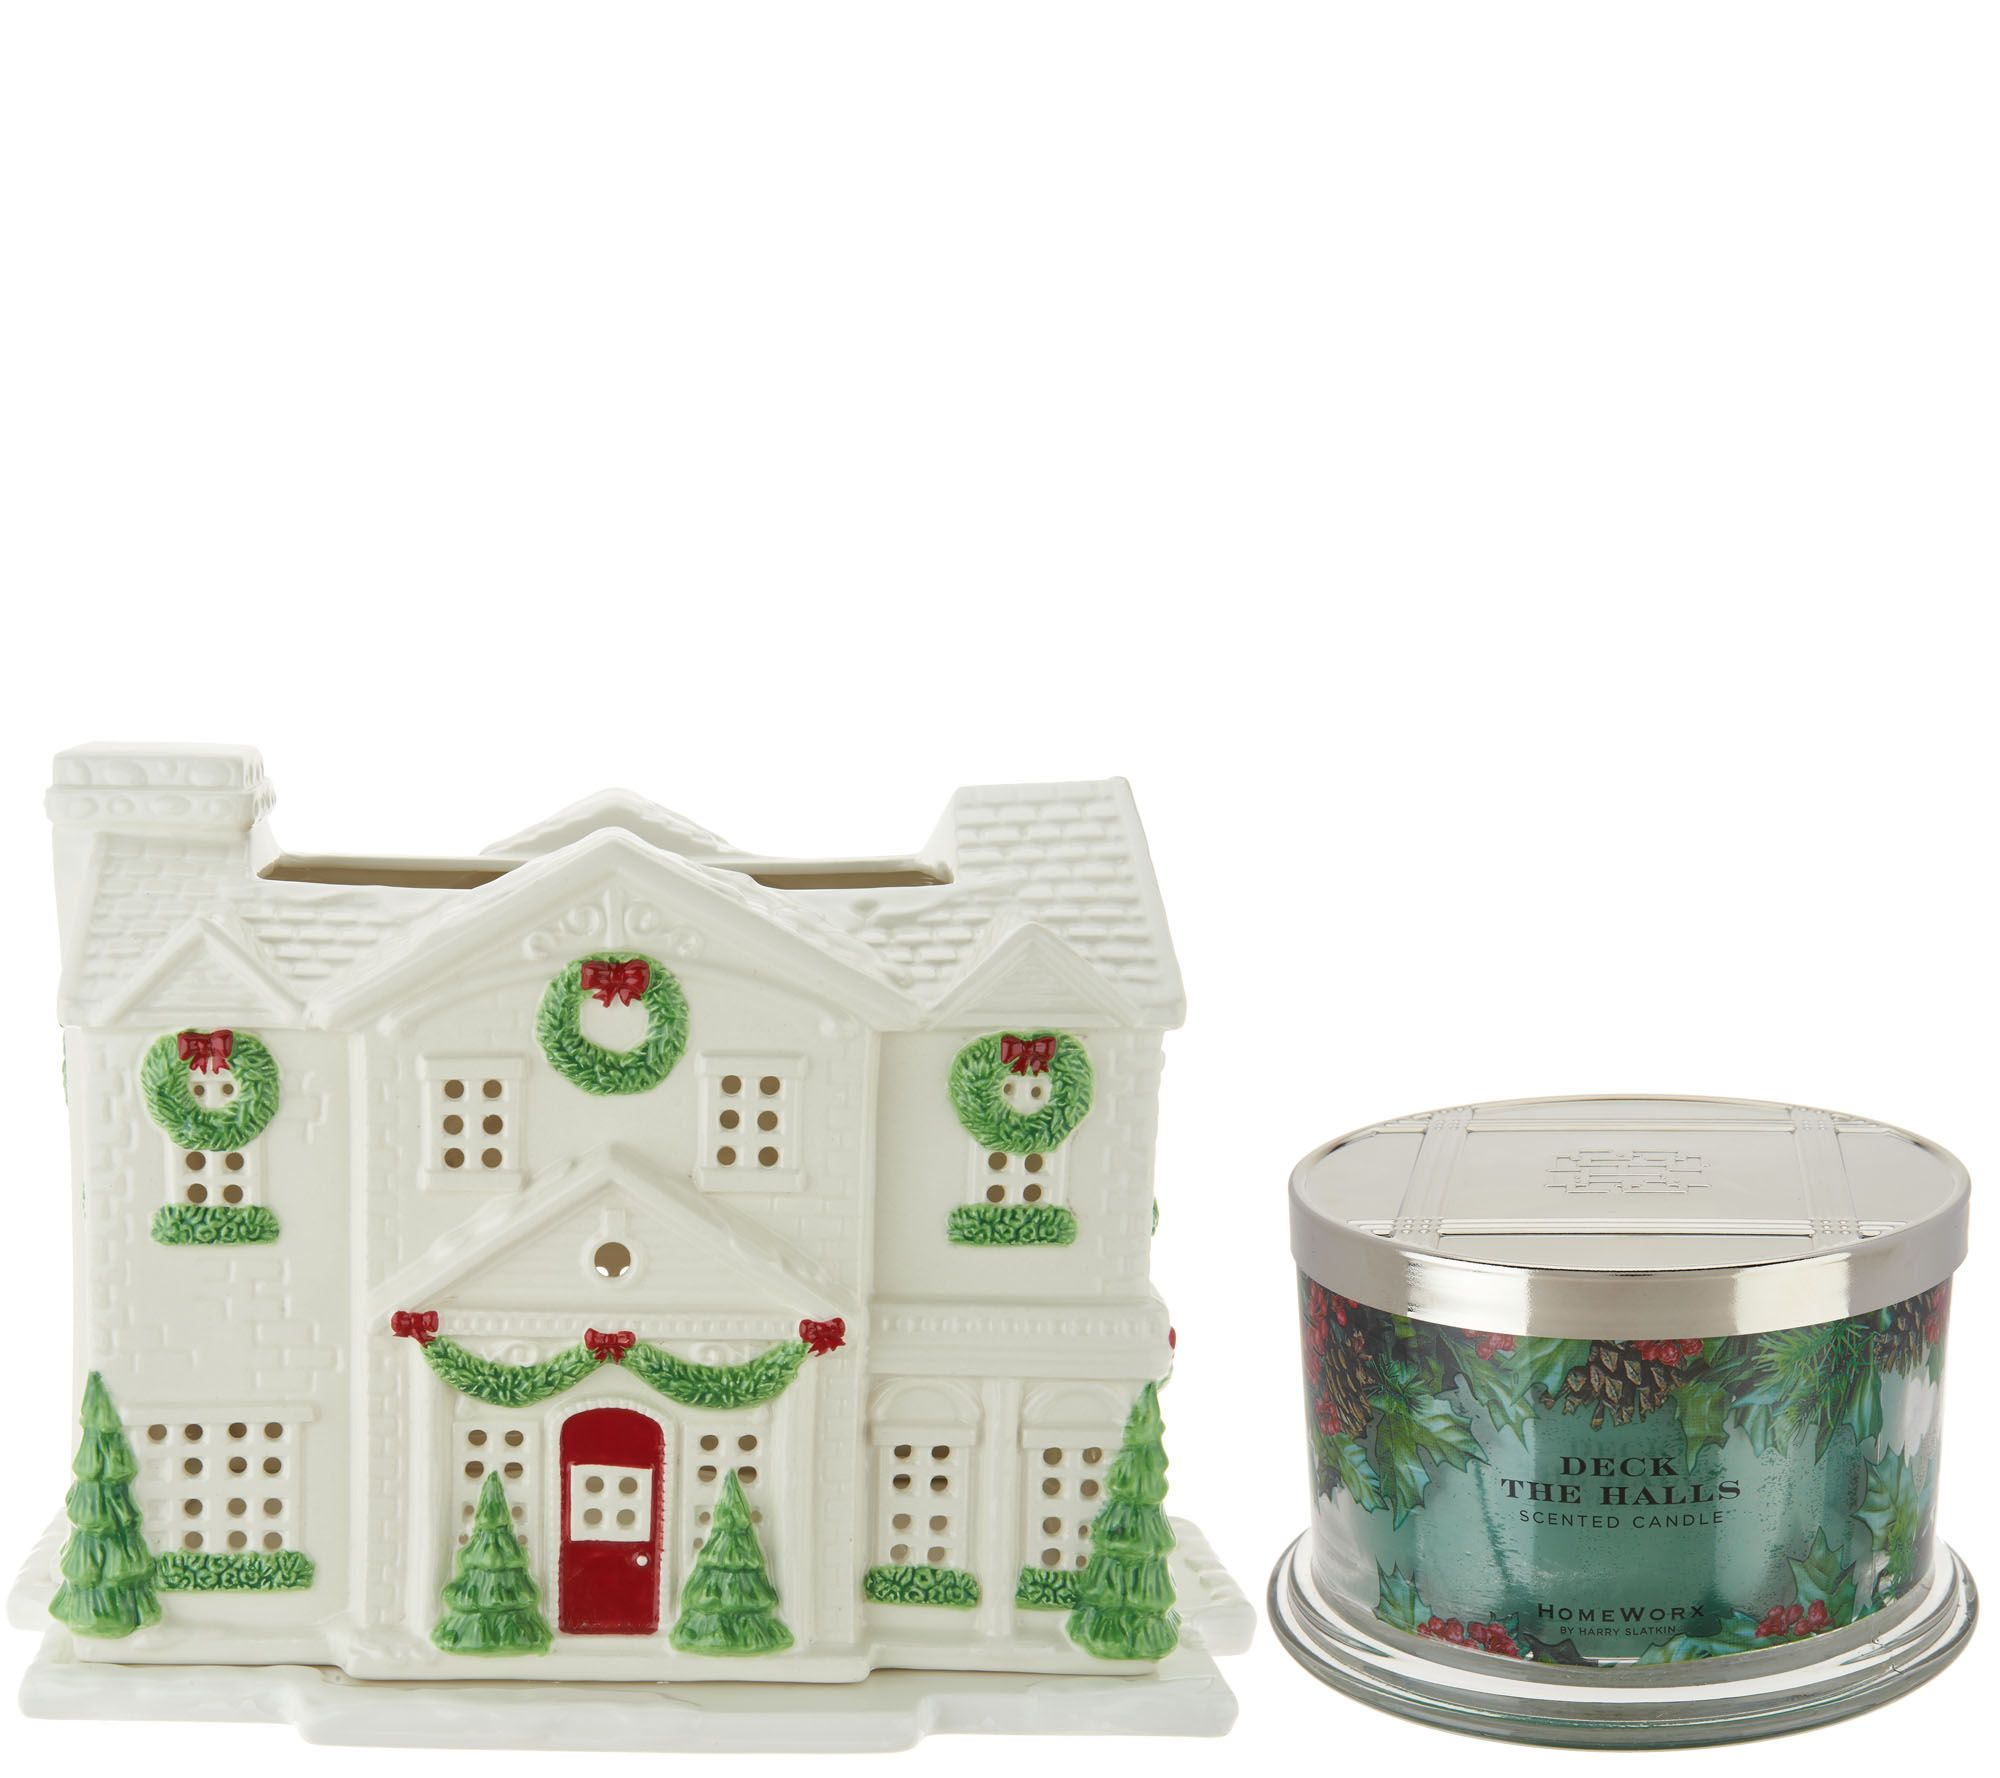 christmas in july sale shop everything christmas qvc com homeworx by harry slatkin gingerbread country house w 3 wick candle h211399